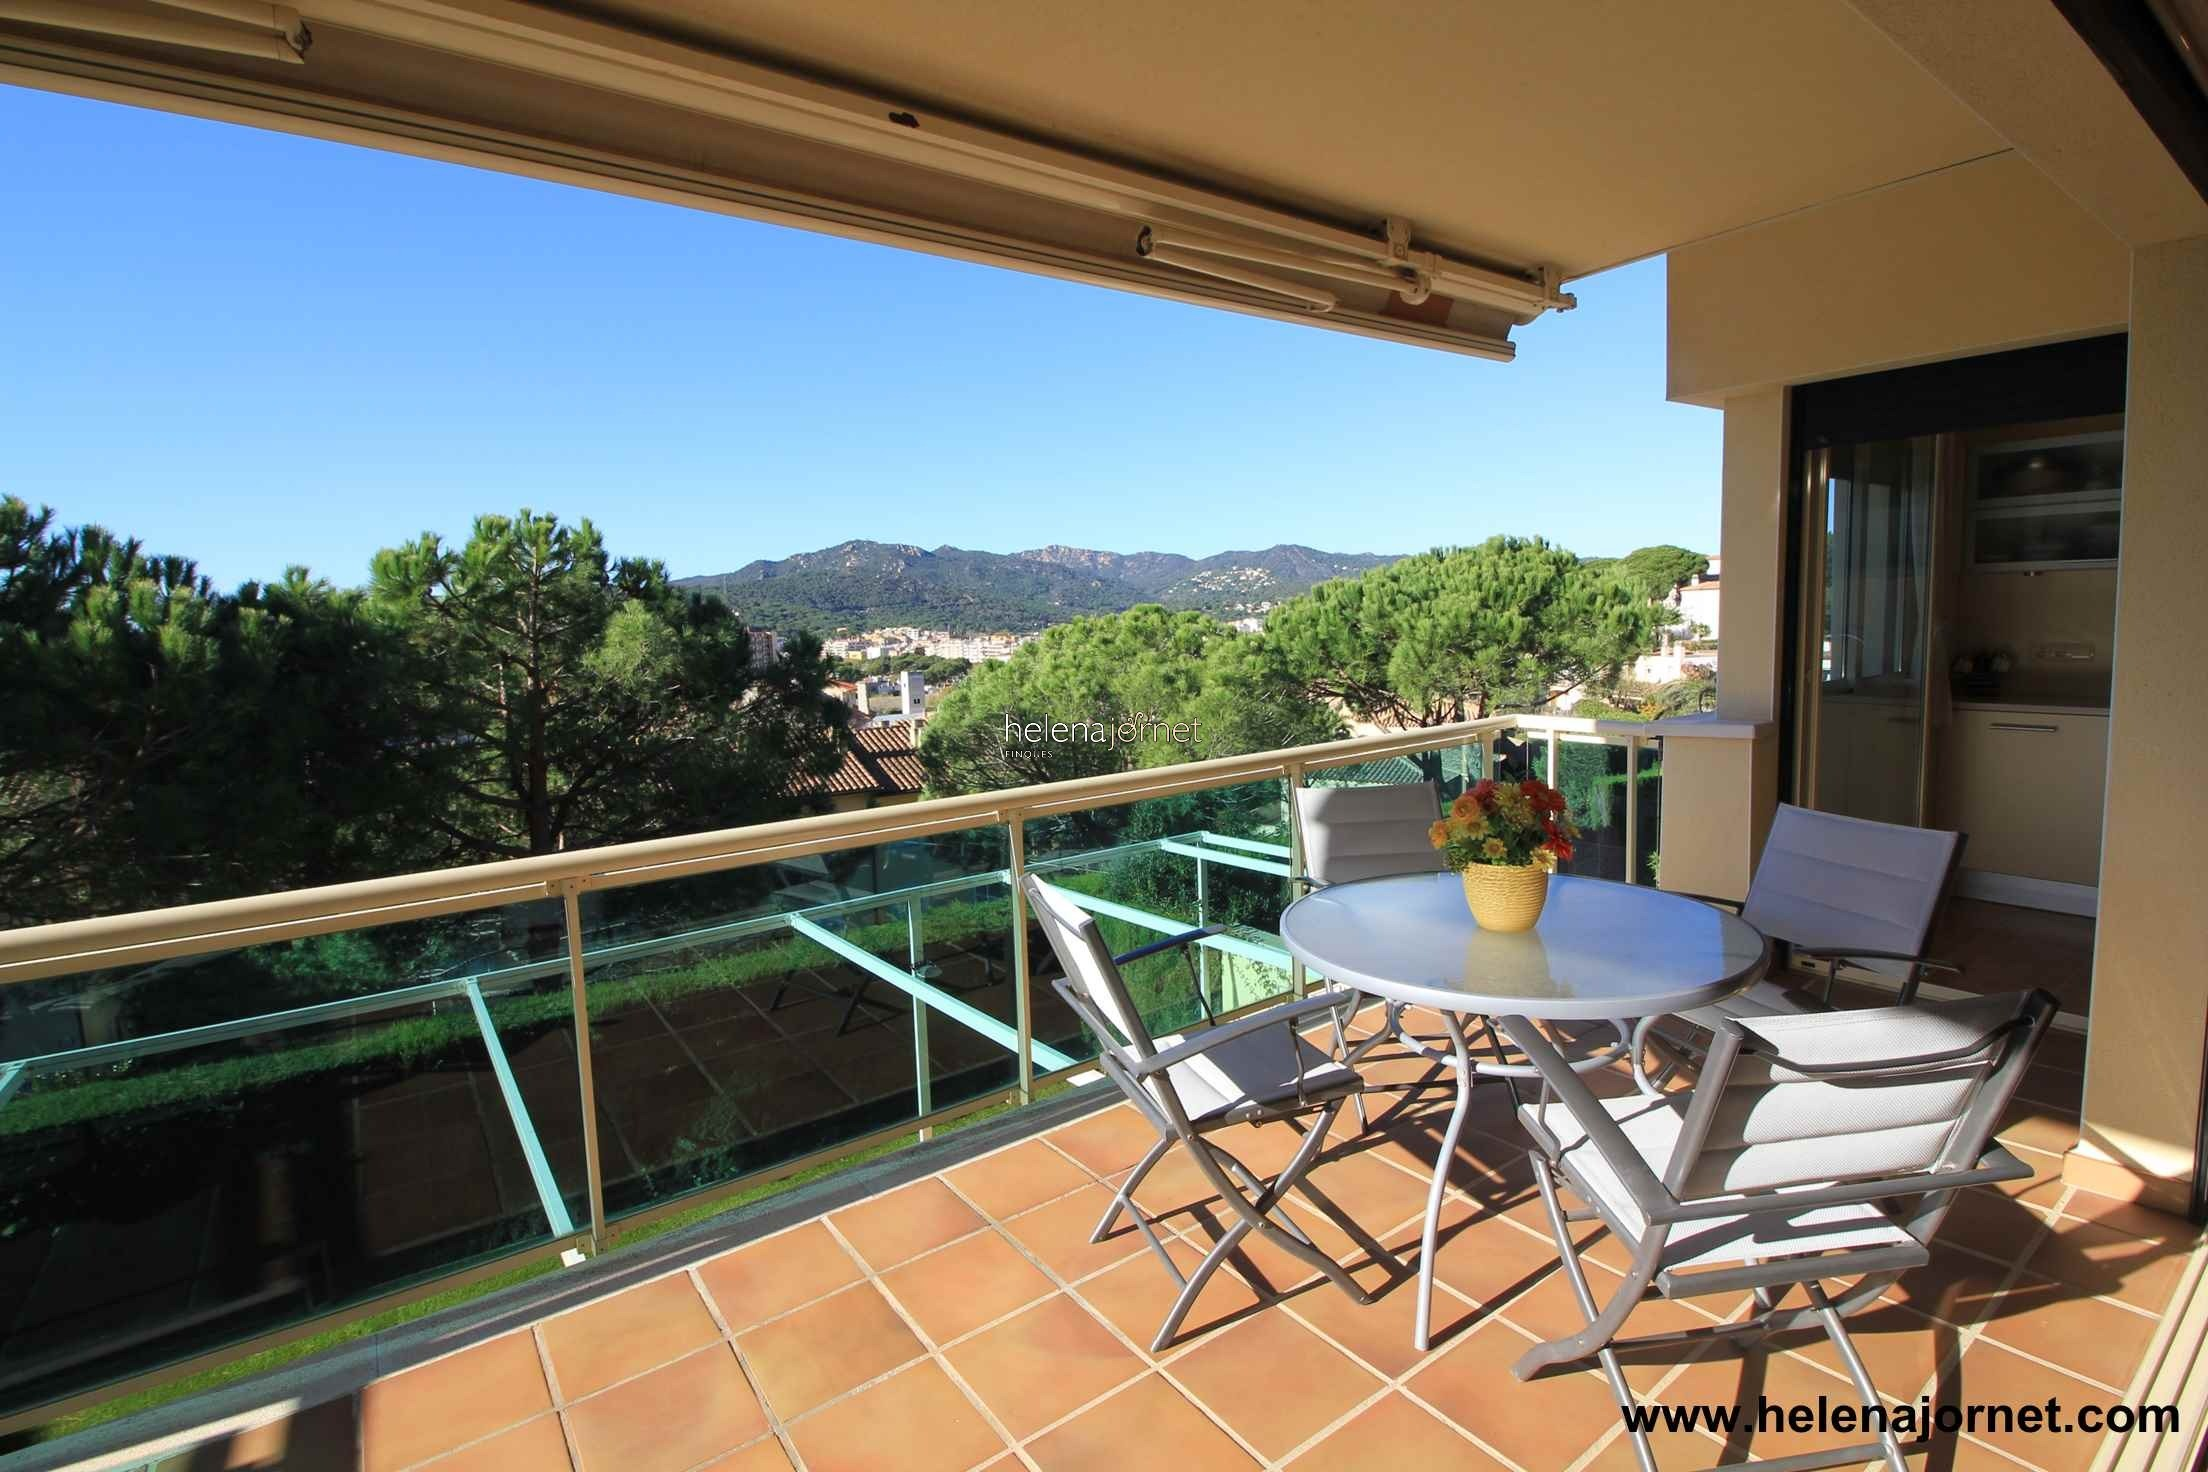 Fantastic apartment  only 5 minutes walking distance from the beach - 70022 Margarida